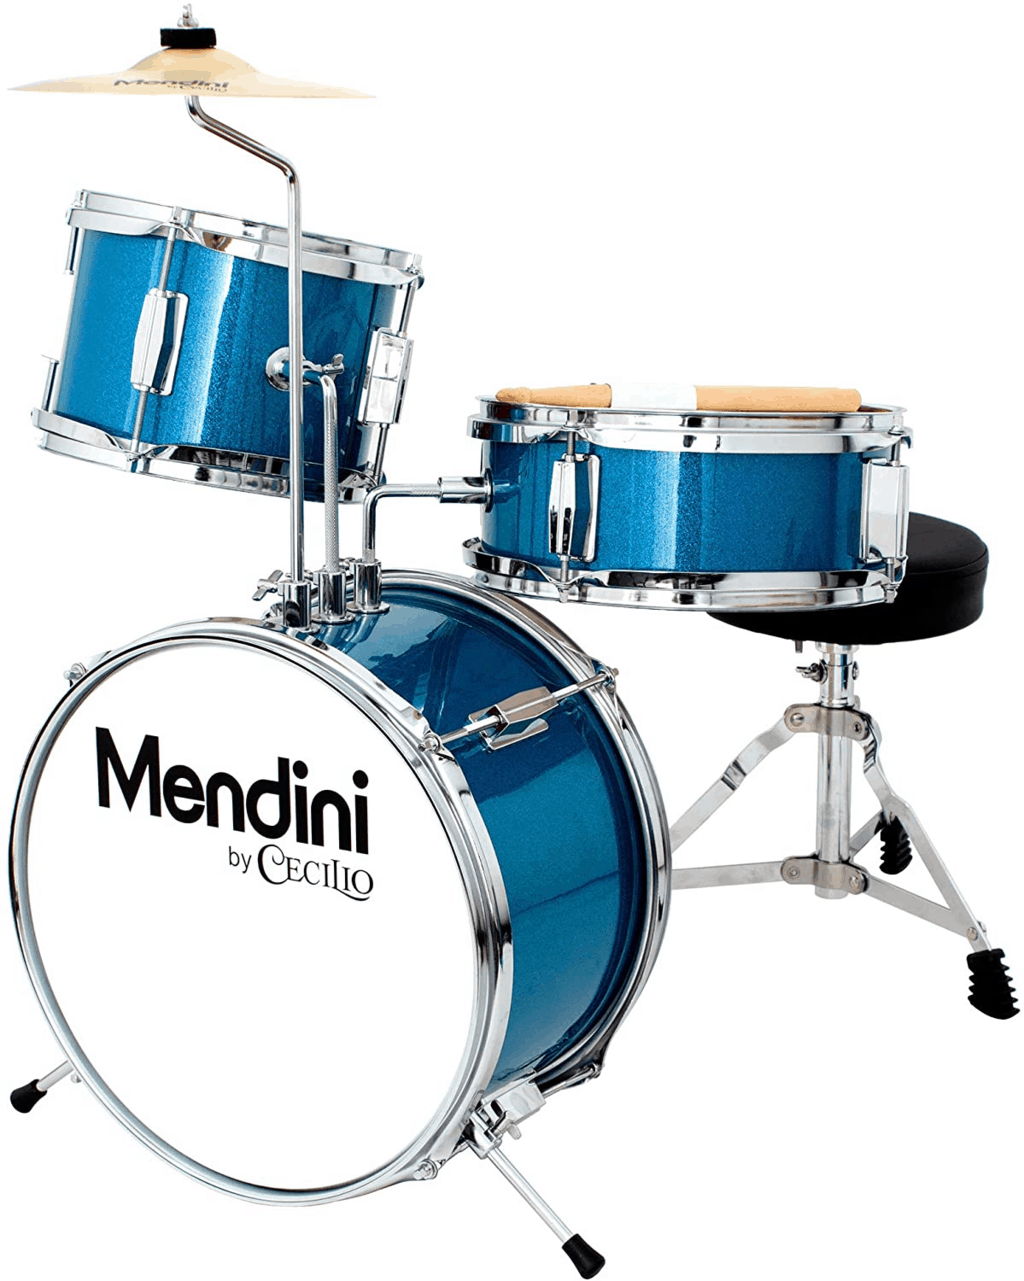 Mendini by Cecilio 16 inch 5-Piece Complete Kids Kit